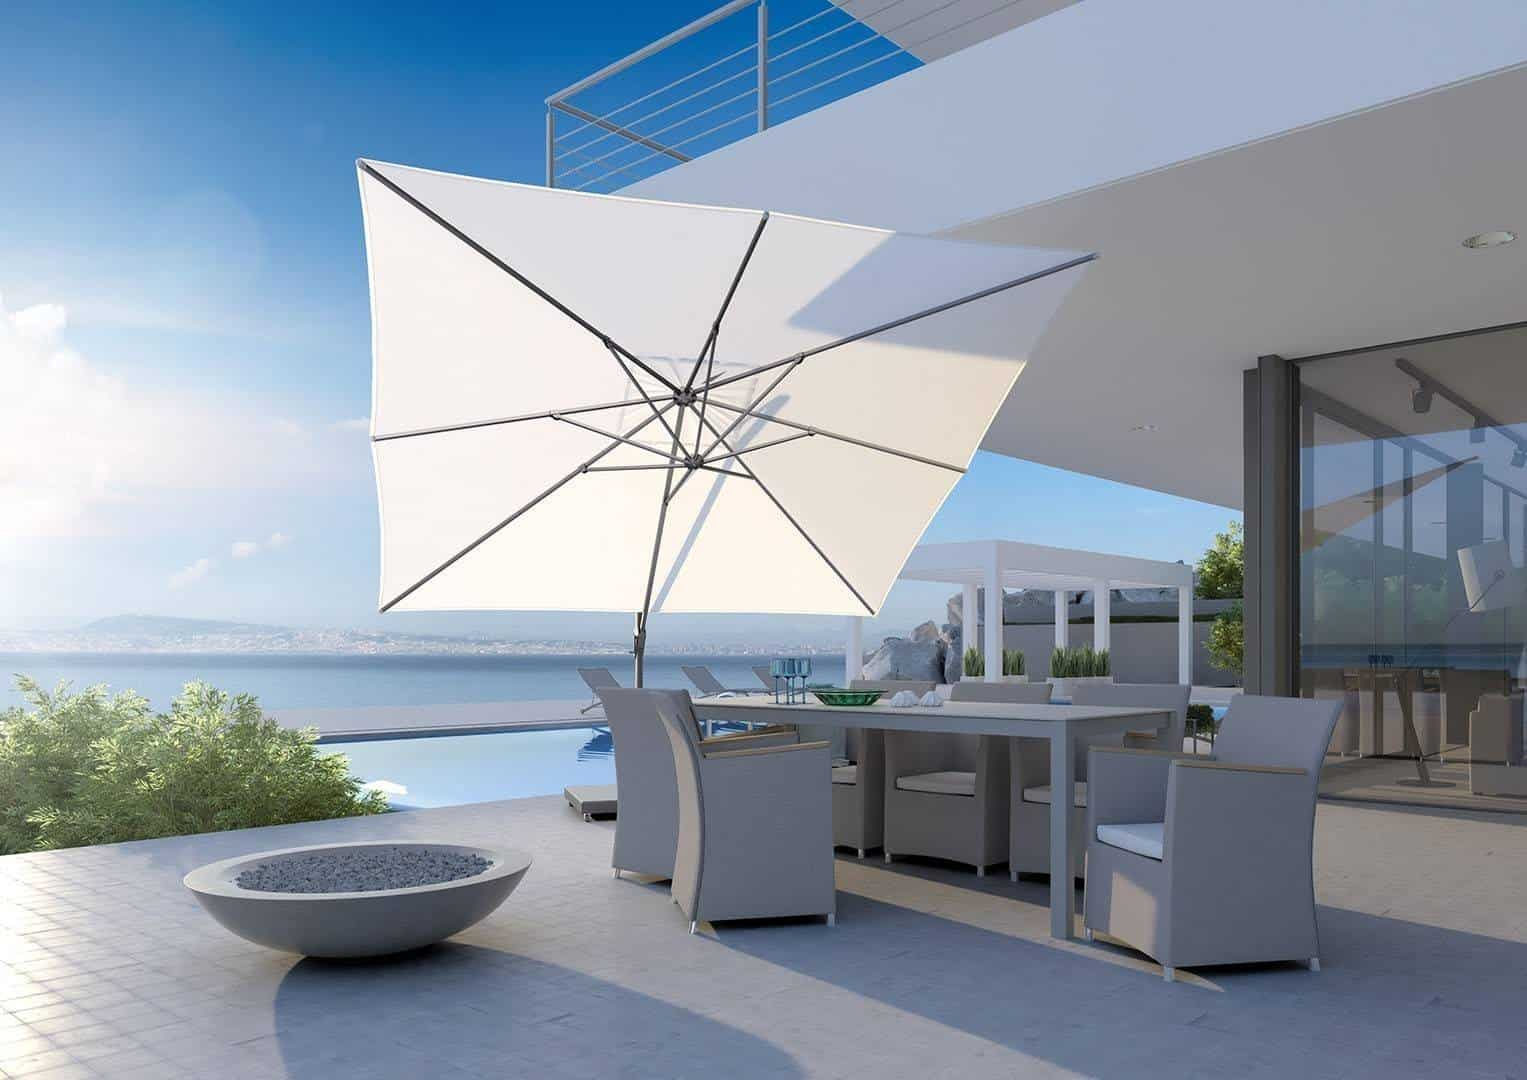 Parasol ogrodowy Challenger T1 3 m x 3 m white 270